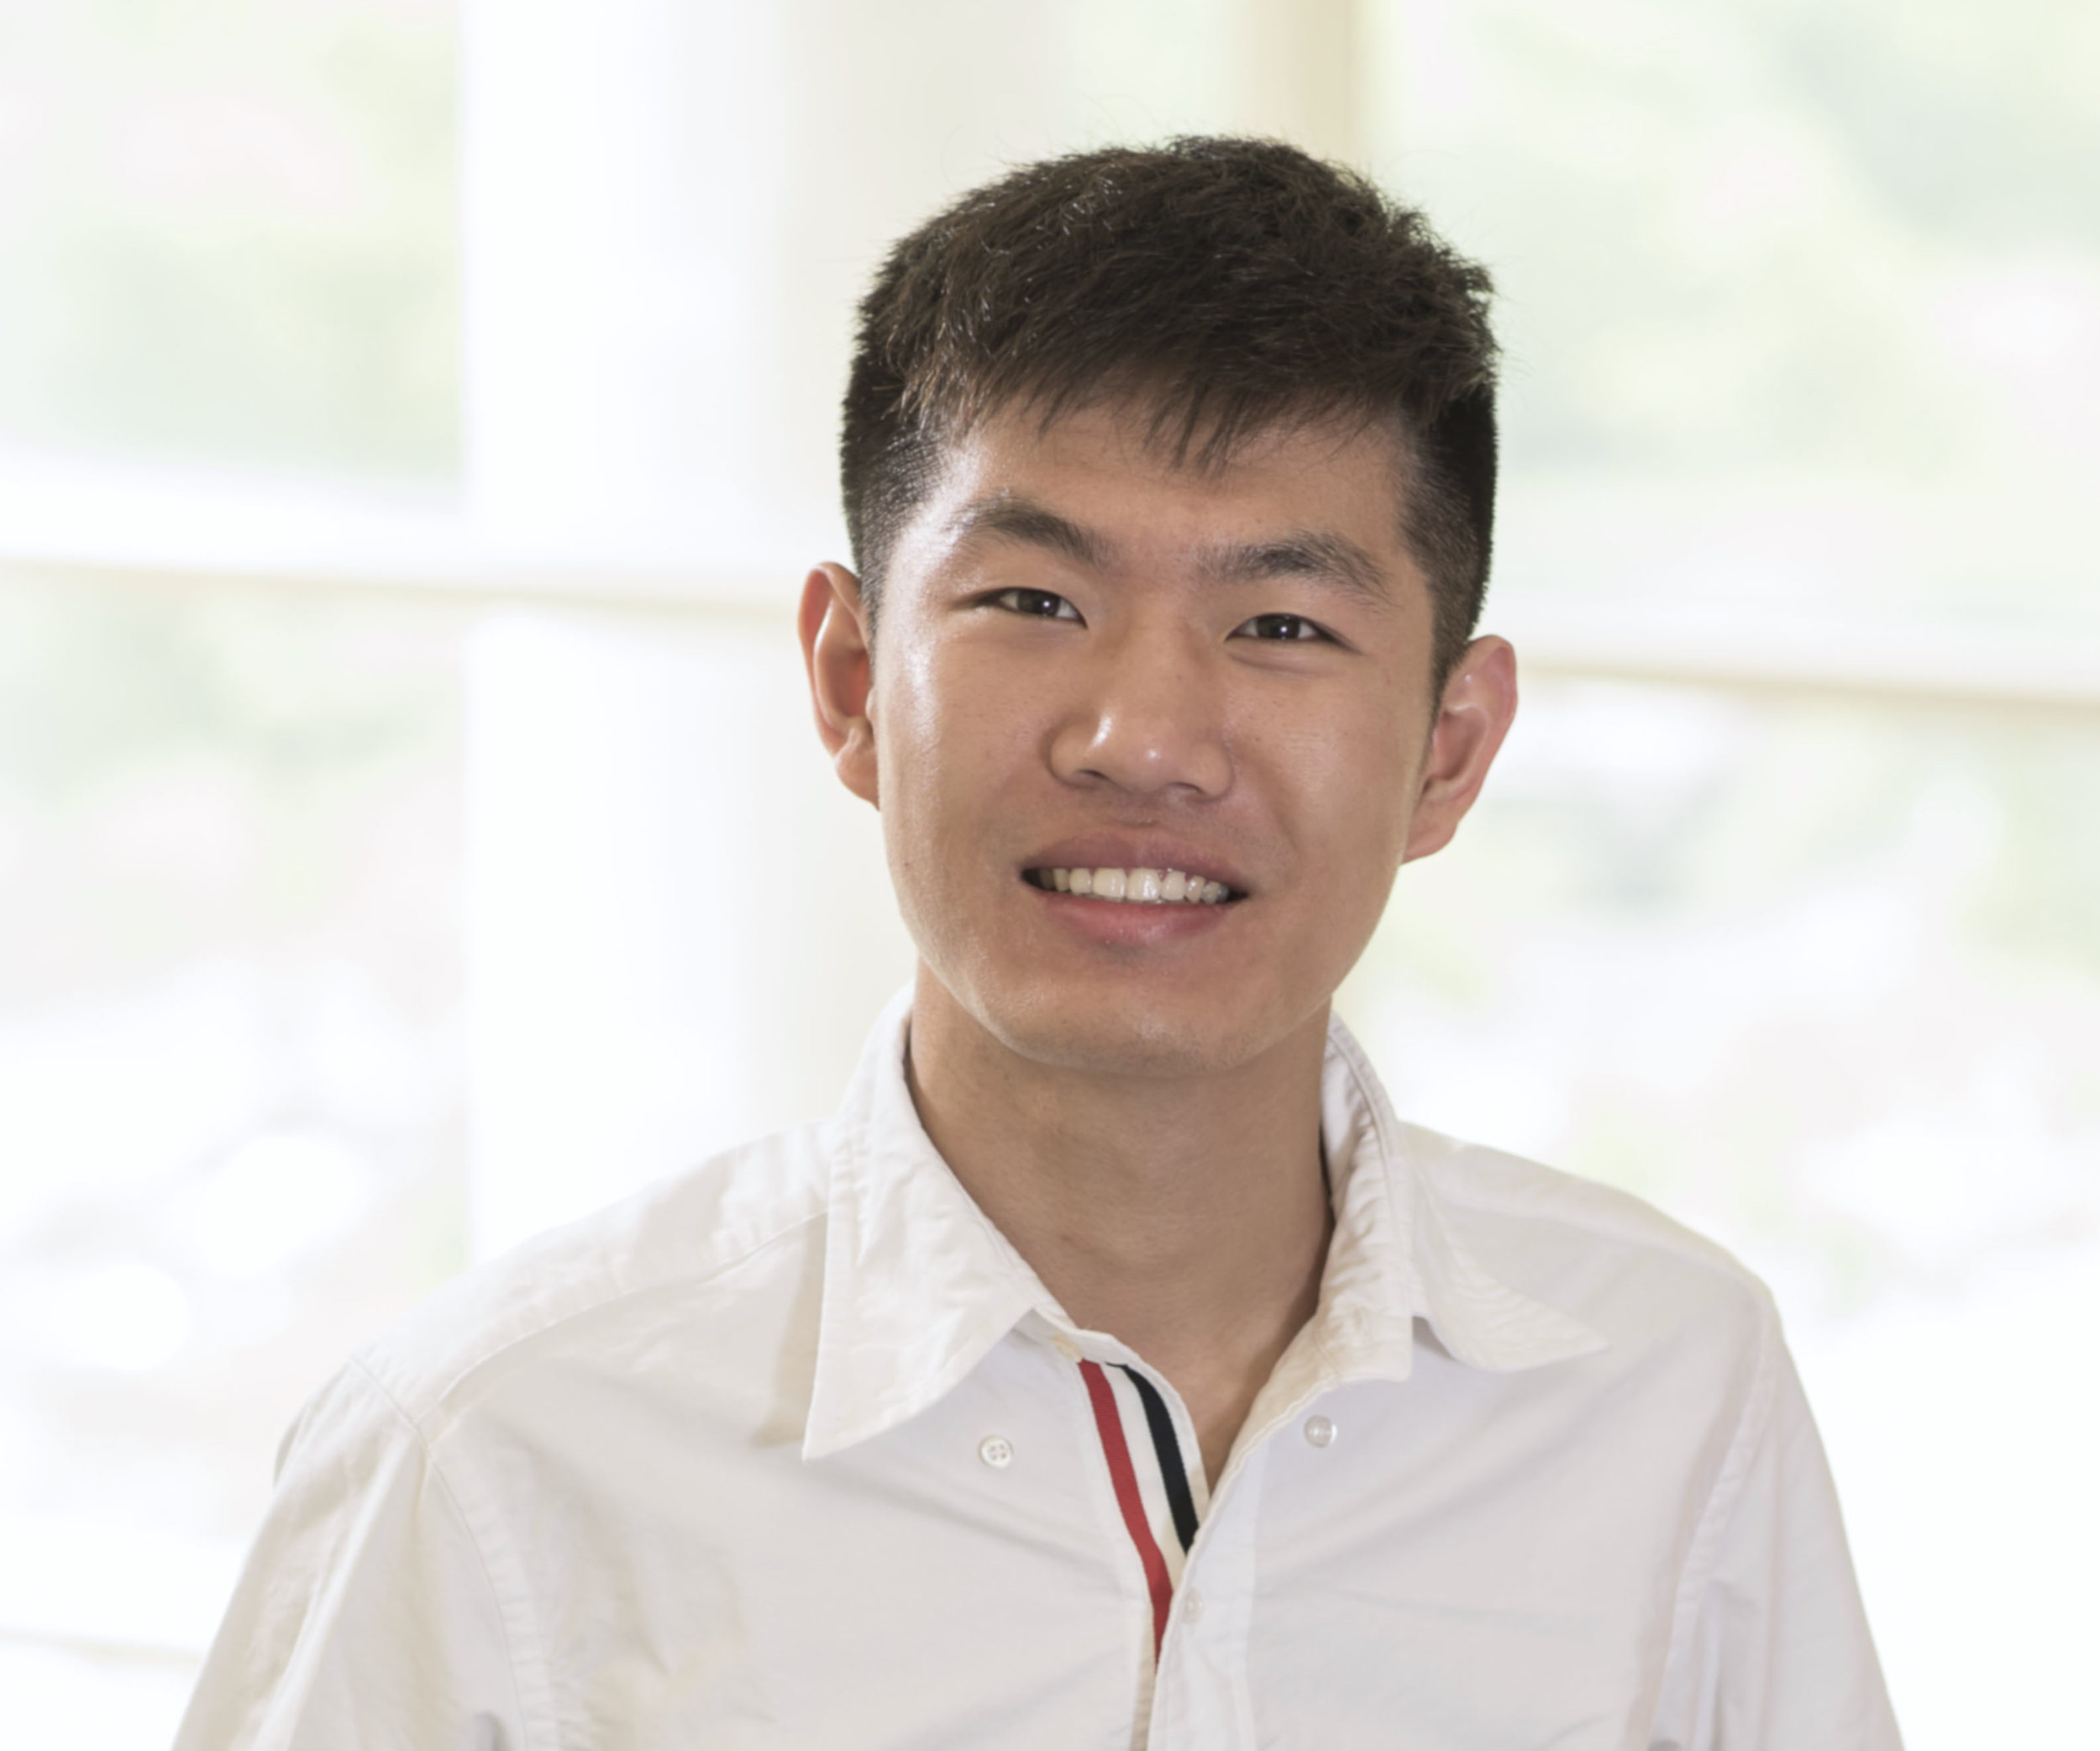 Jiayi SunGraduate Student - Came from Beijing, China. Got his B.S. at Purdue and joined the lab in Jan 2016. Has been exploring whether and how semi-infectious particles modulate the evolutionary potential of influenza virus populations. Refreshing and motivating himself by gaming at home.